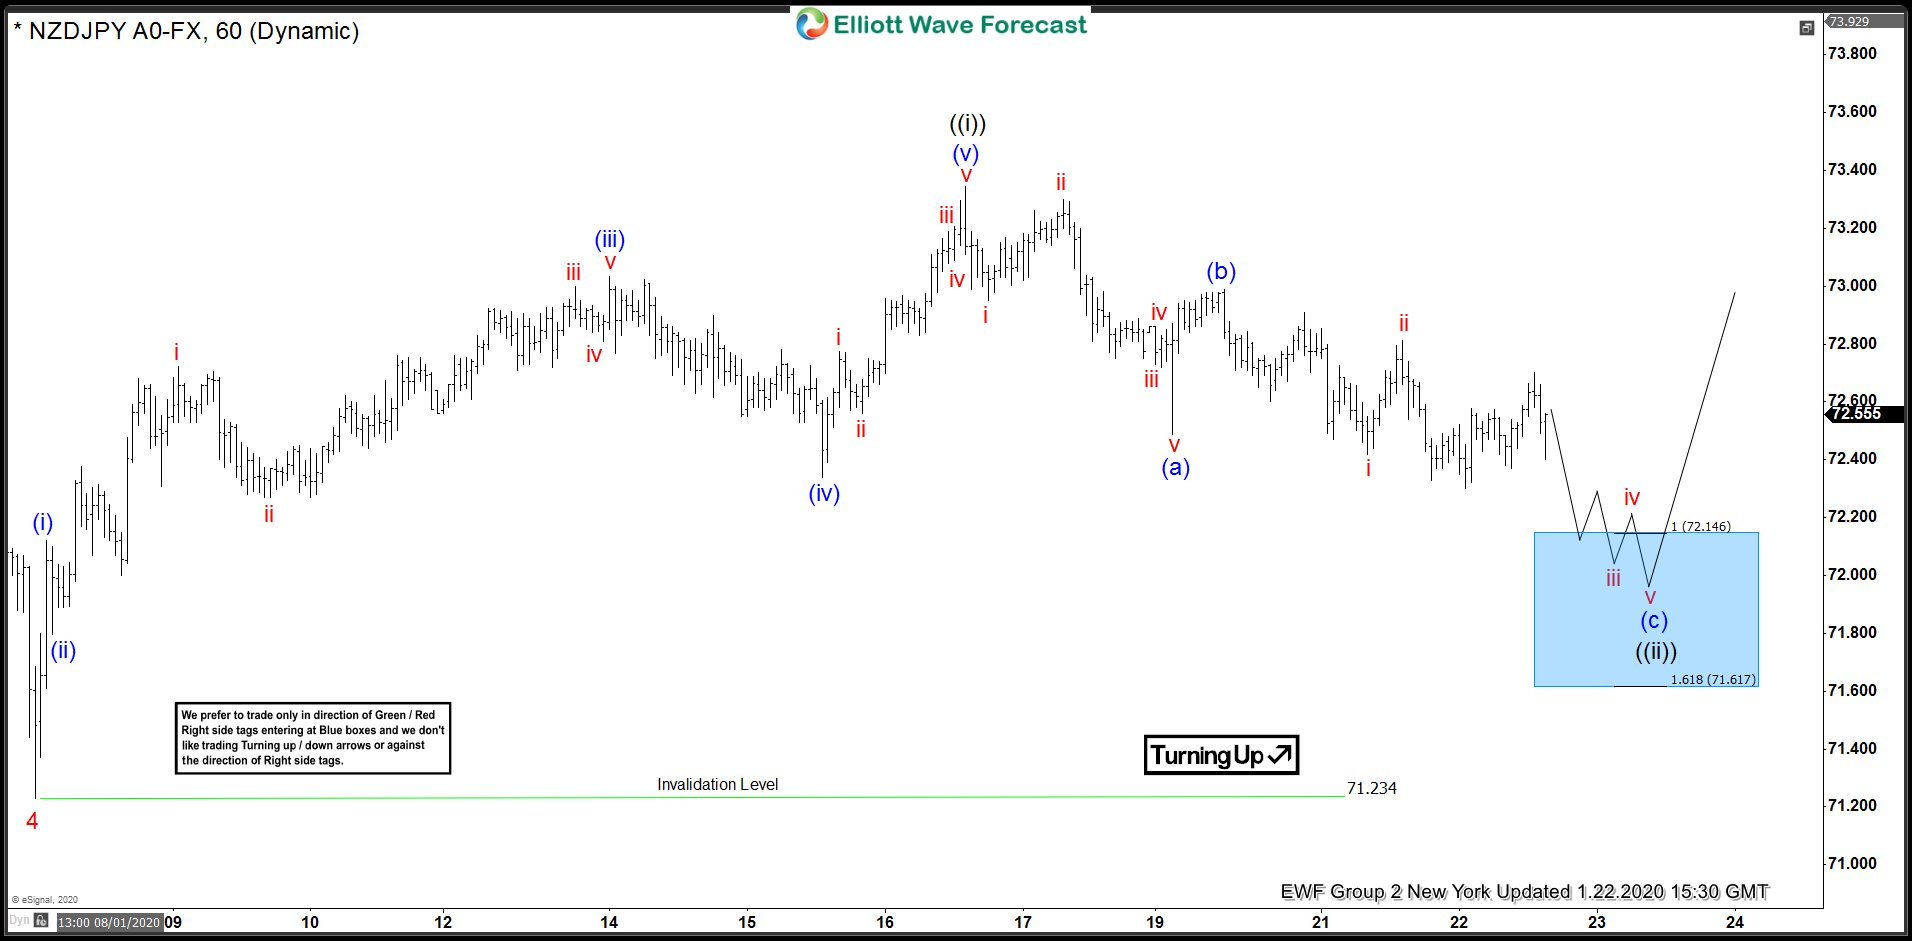 NZDJPY 1.22.2020 1 Hour New York Elliott Wave Update